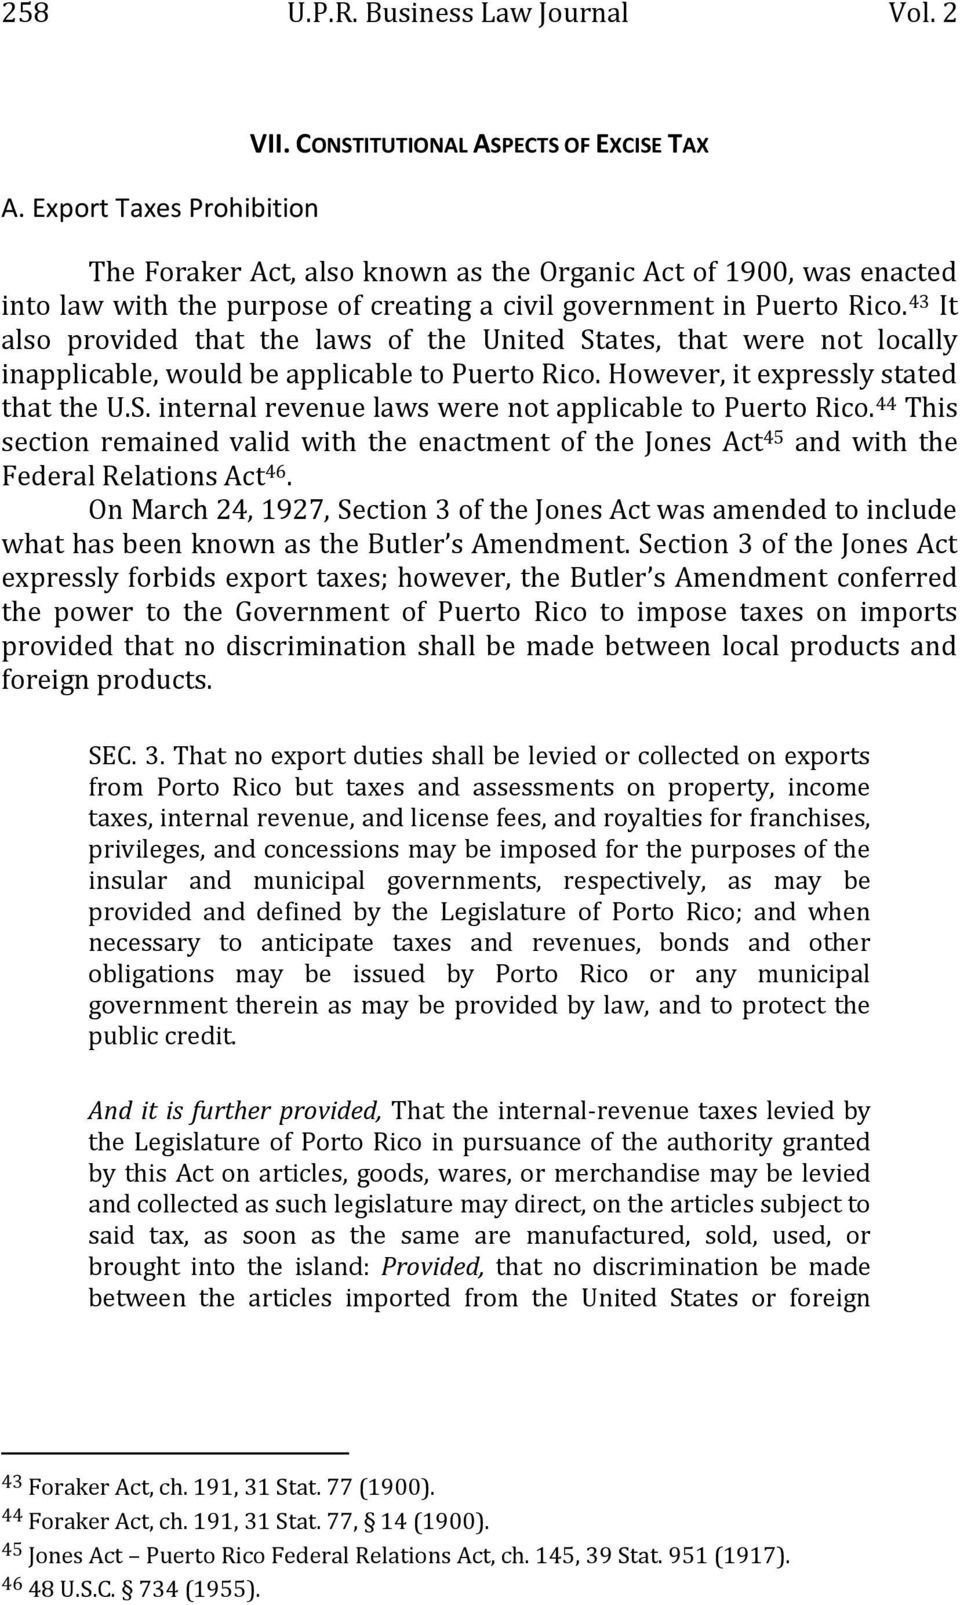 43 It also provided that the laws of the United States, that were not locally inapplicable, would be applicable to Puerto Rico. However, it expressly stated that the U.S. internal revenue laws were not applicable to Puerto Rico.